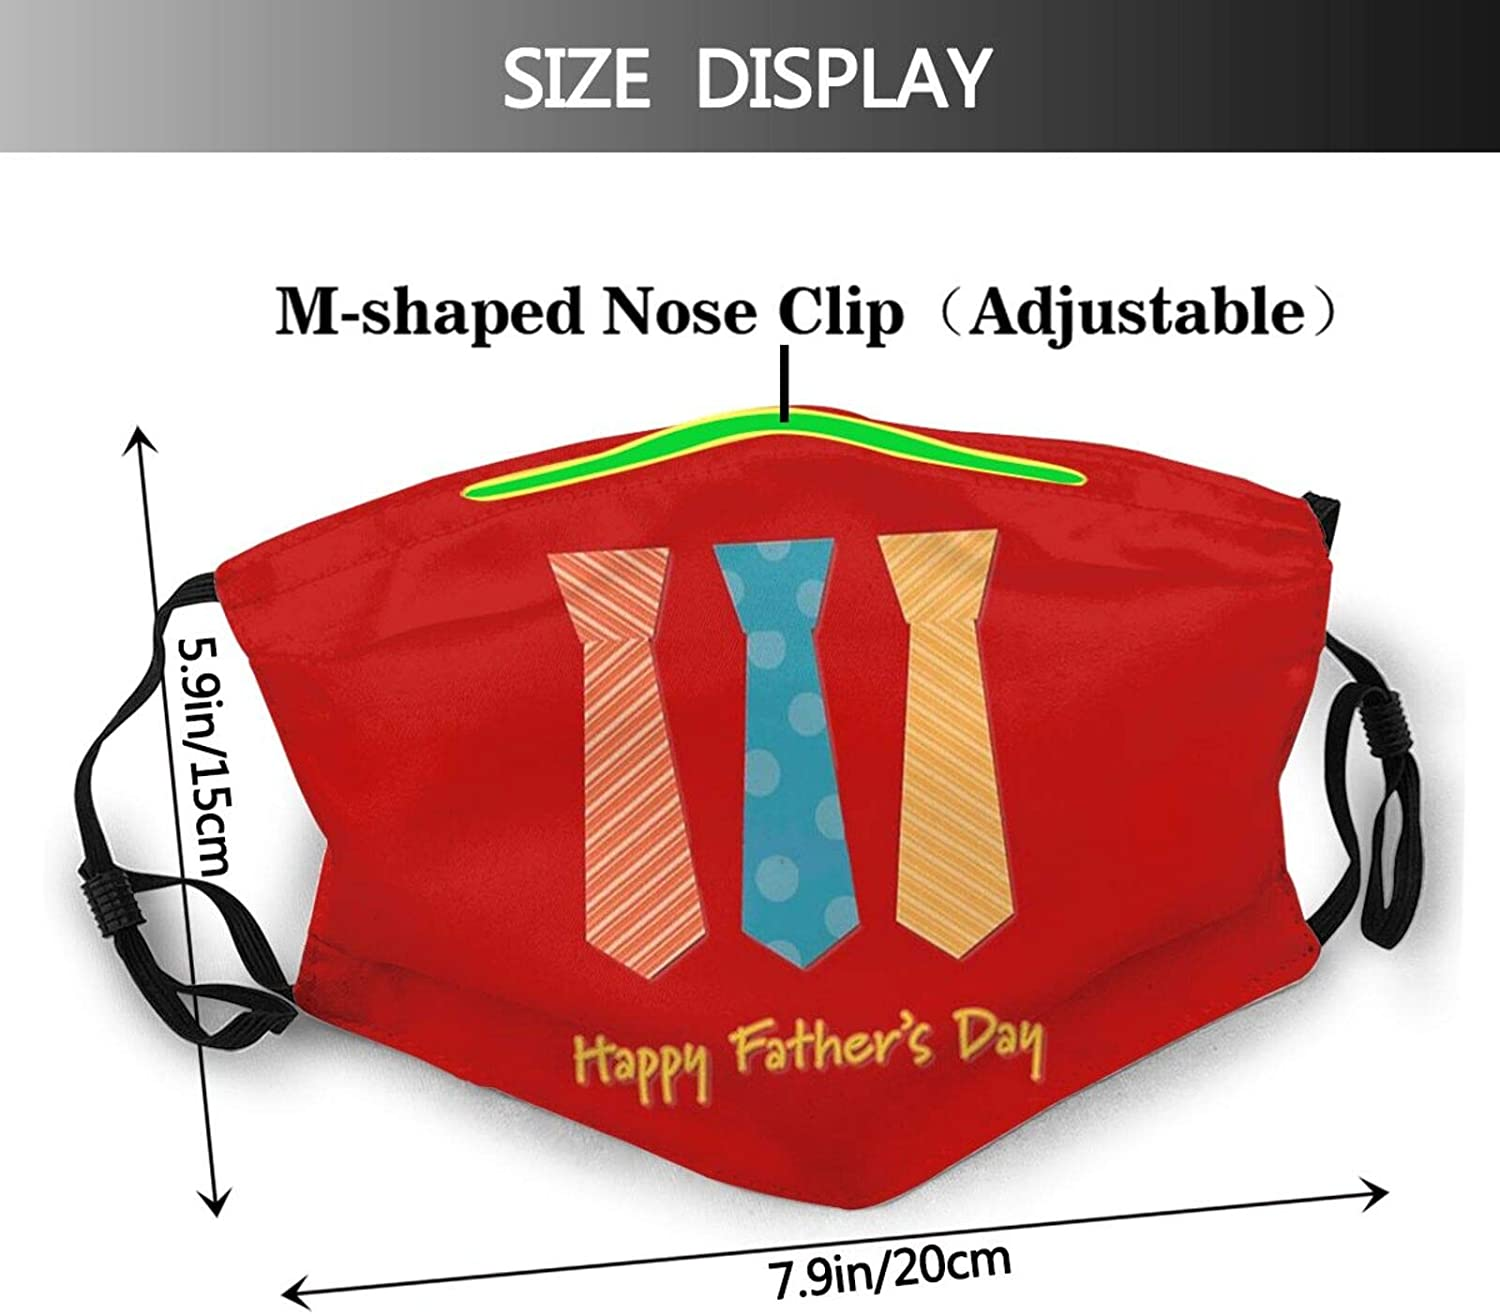 Happy Father's Day Face Mask Unisex Balaclava Mouth Cover With Filter Windproof Dustproof Adjustable